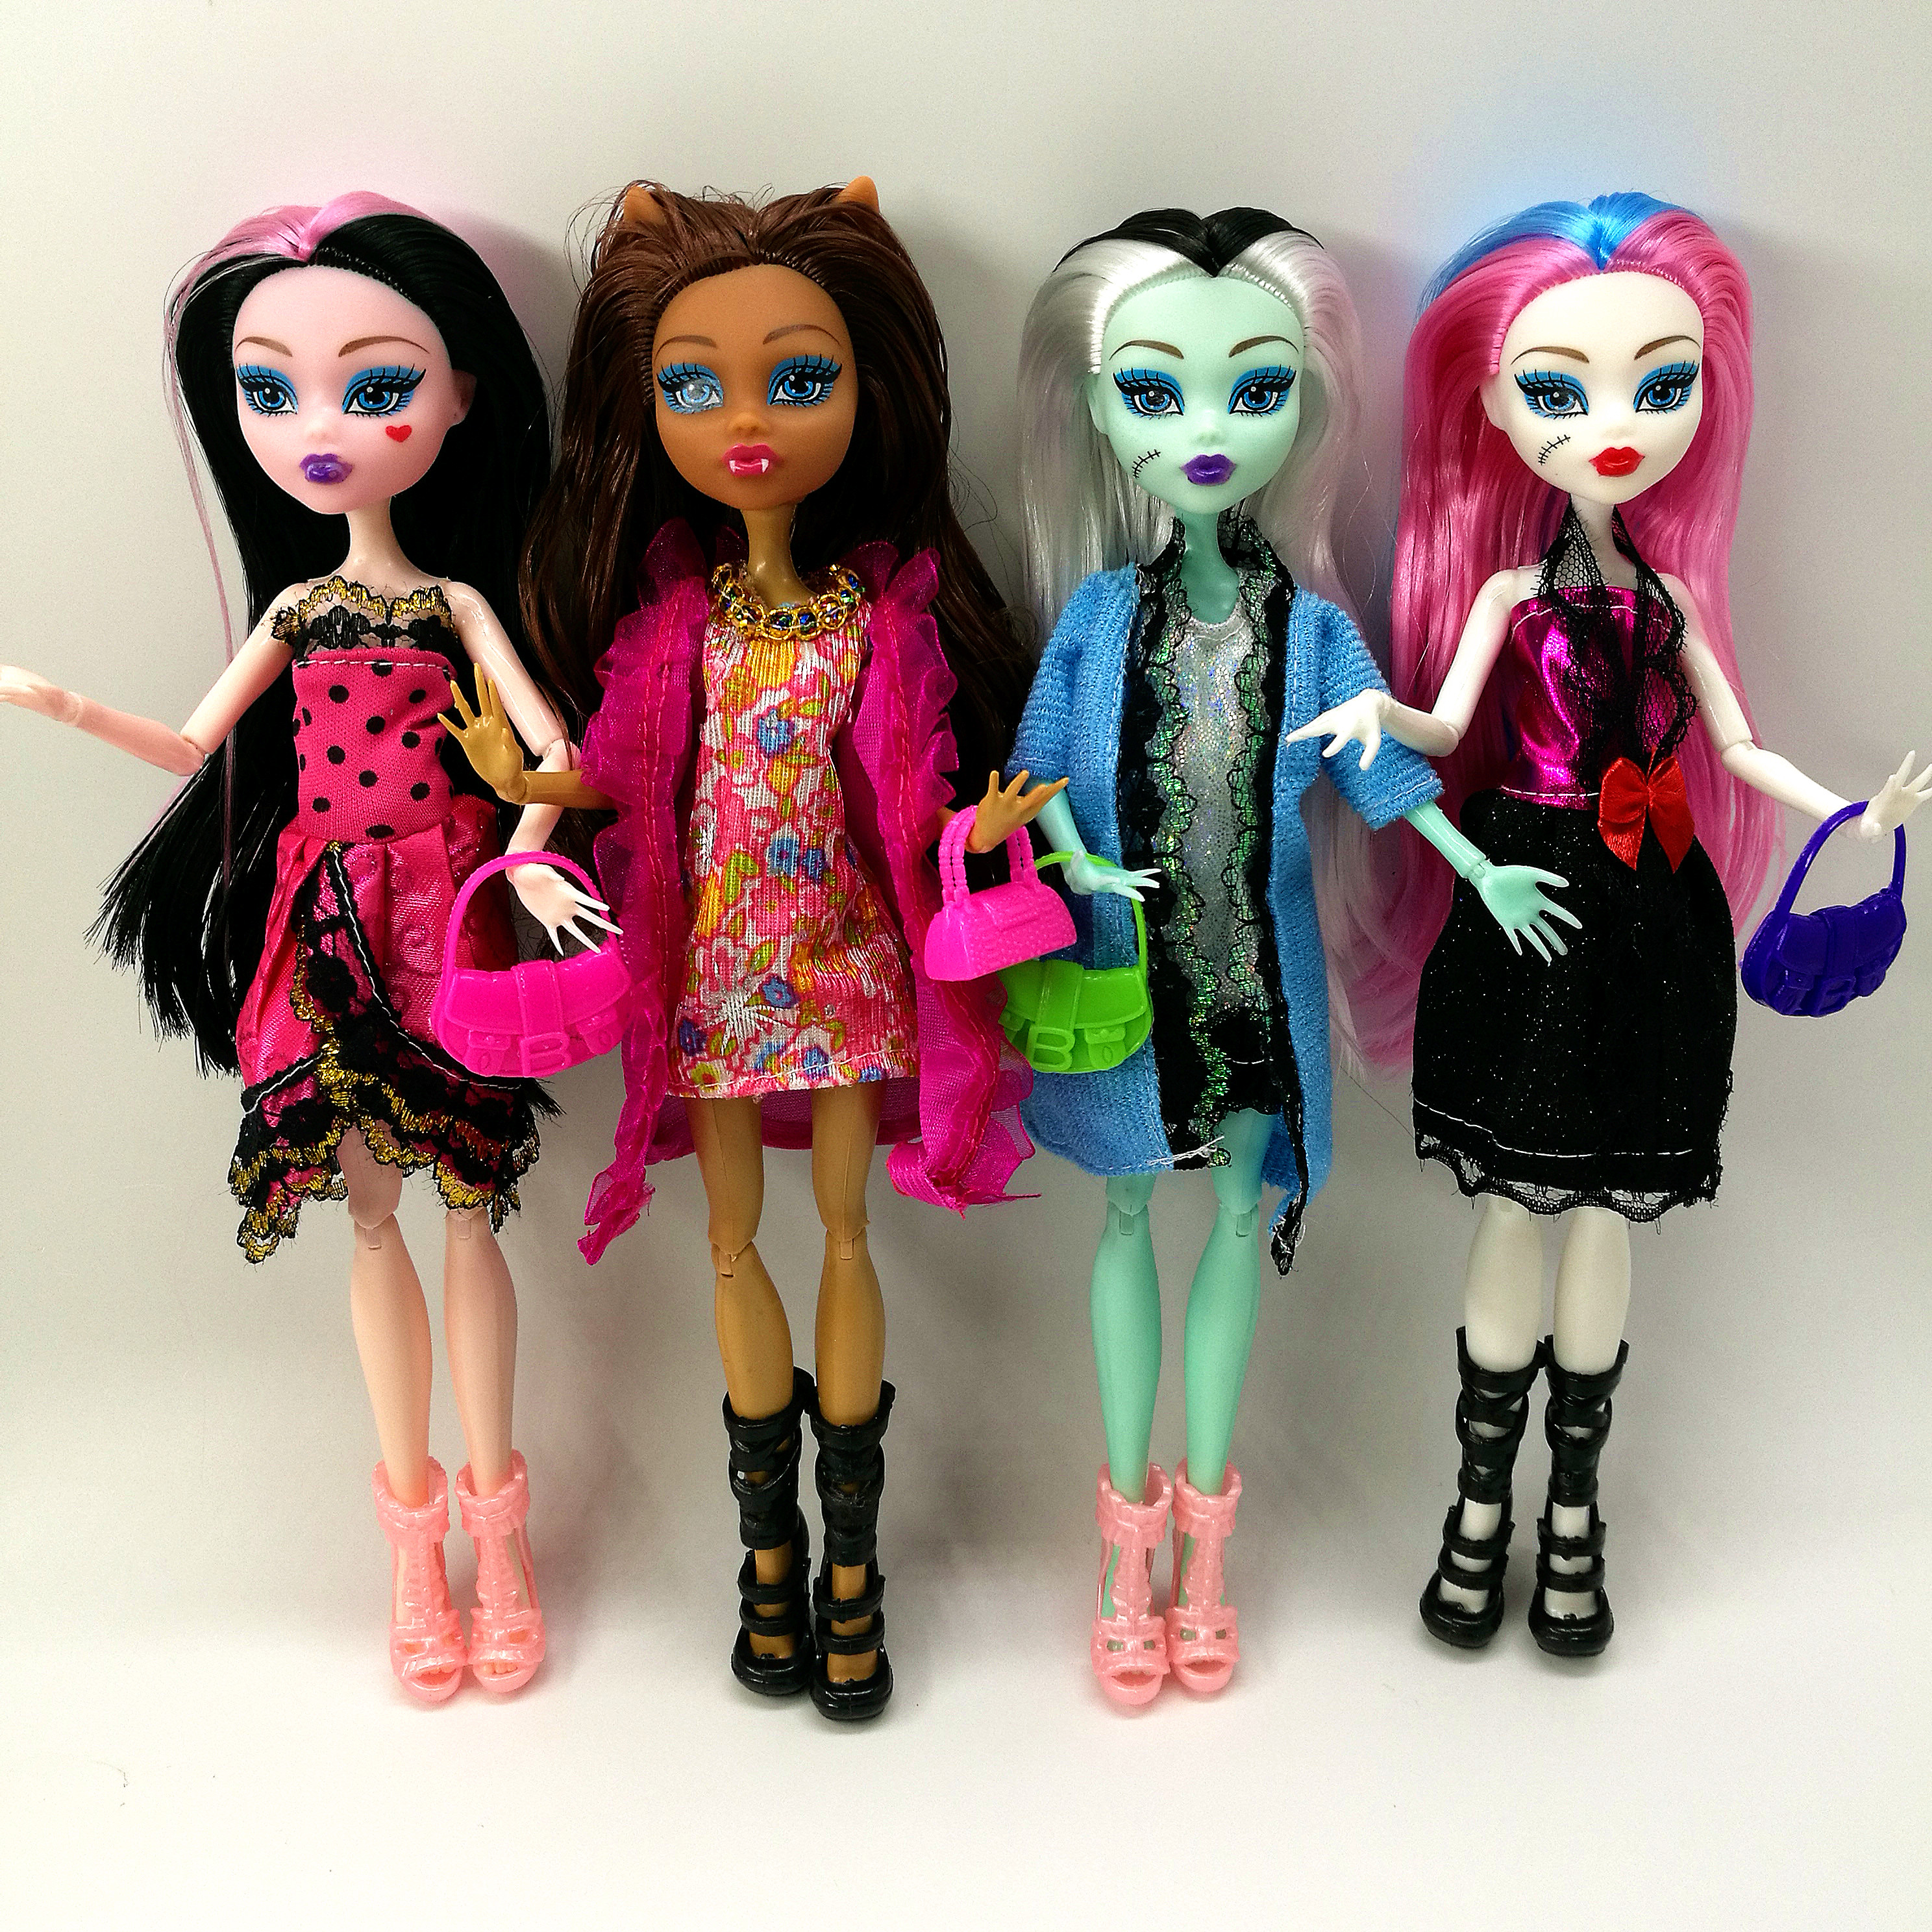 Cheapest NO BOX 4 pcs/set Dolls New Style high dolls Monster fun high Moveable Joint Body Fashion dolls Girls Toys Best Gift(China)